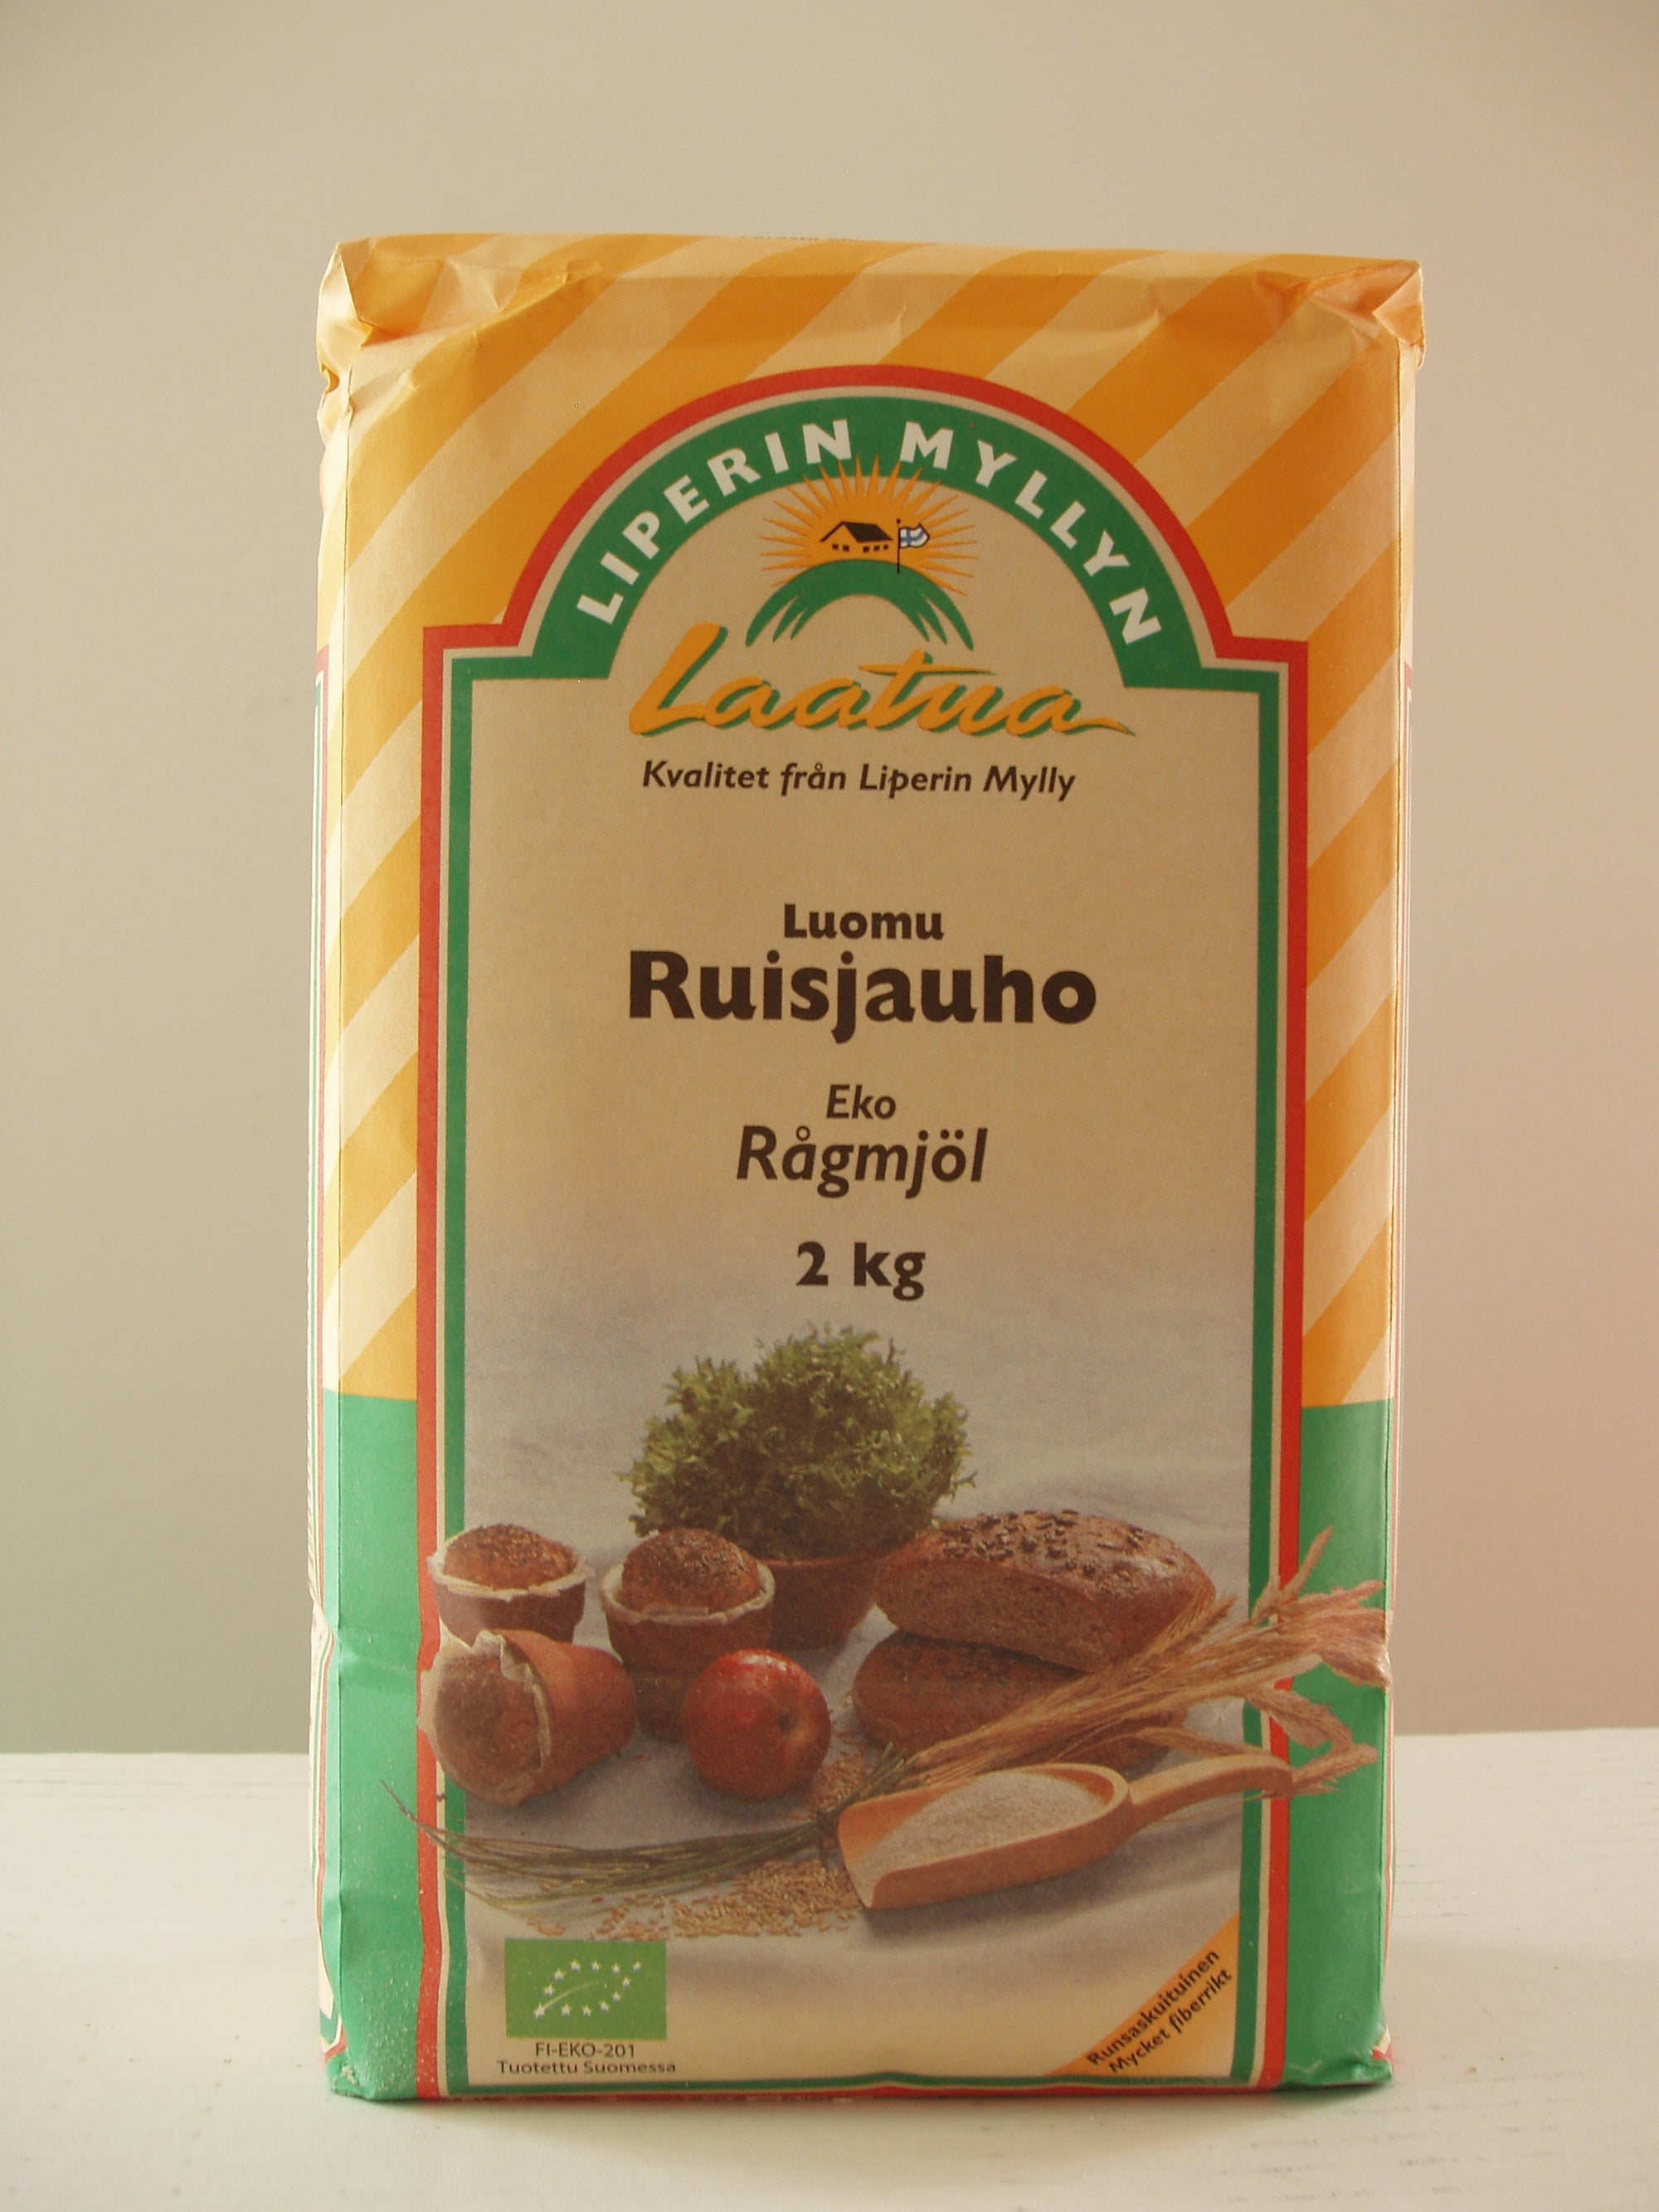 Luomu Ruisjauho 2kg